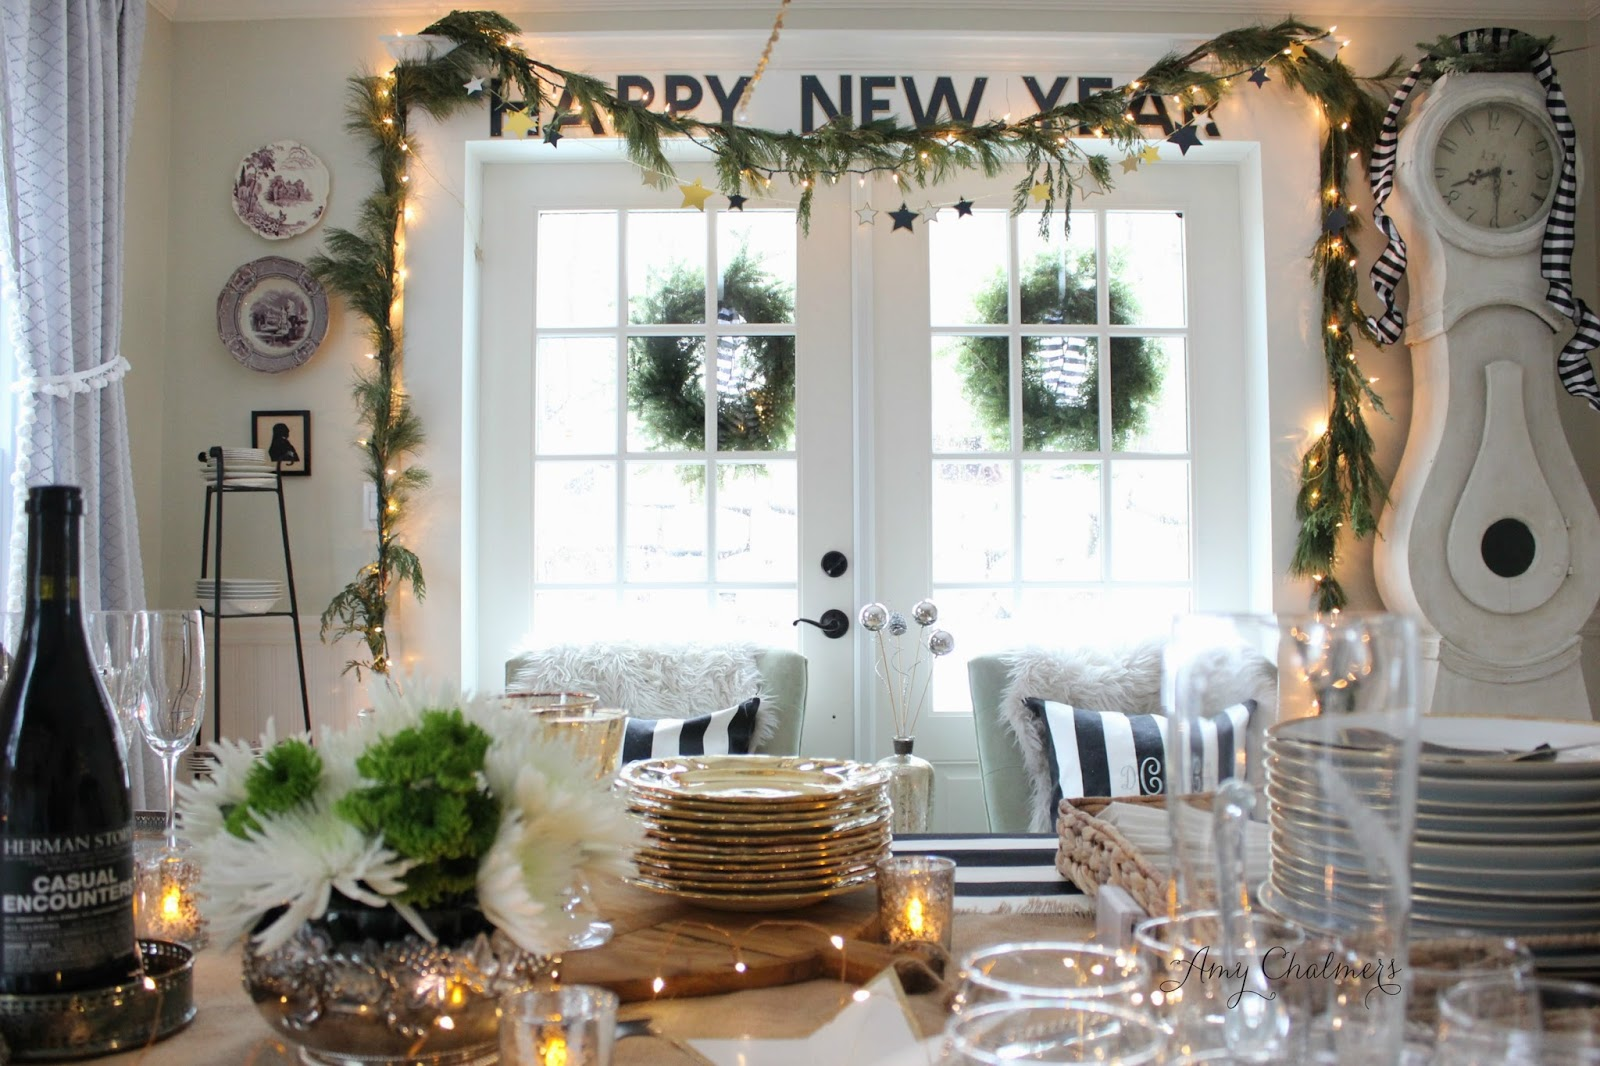 Maison decor a glittery new years eve affair for Maison decour